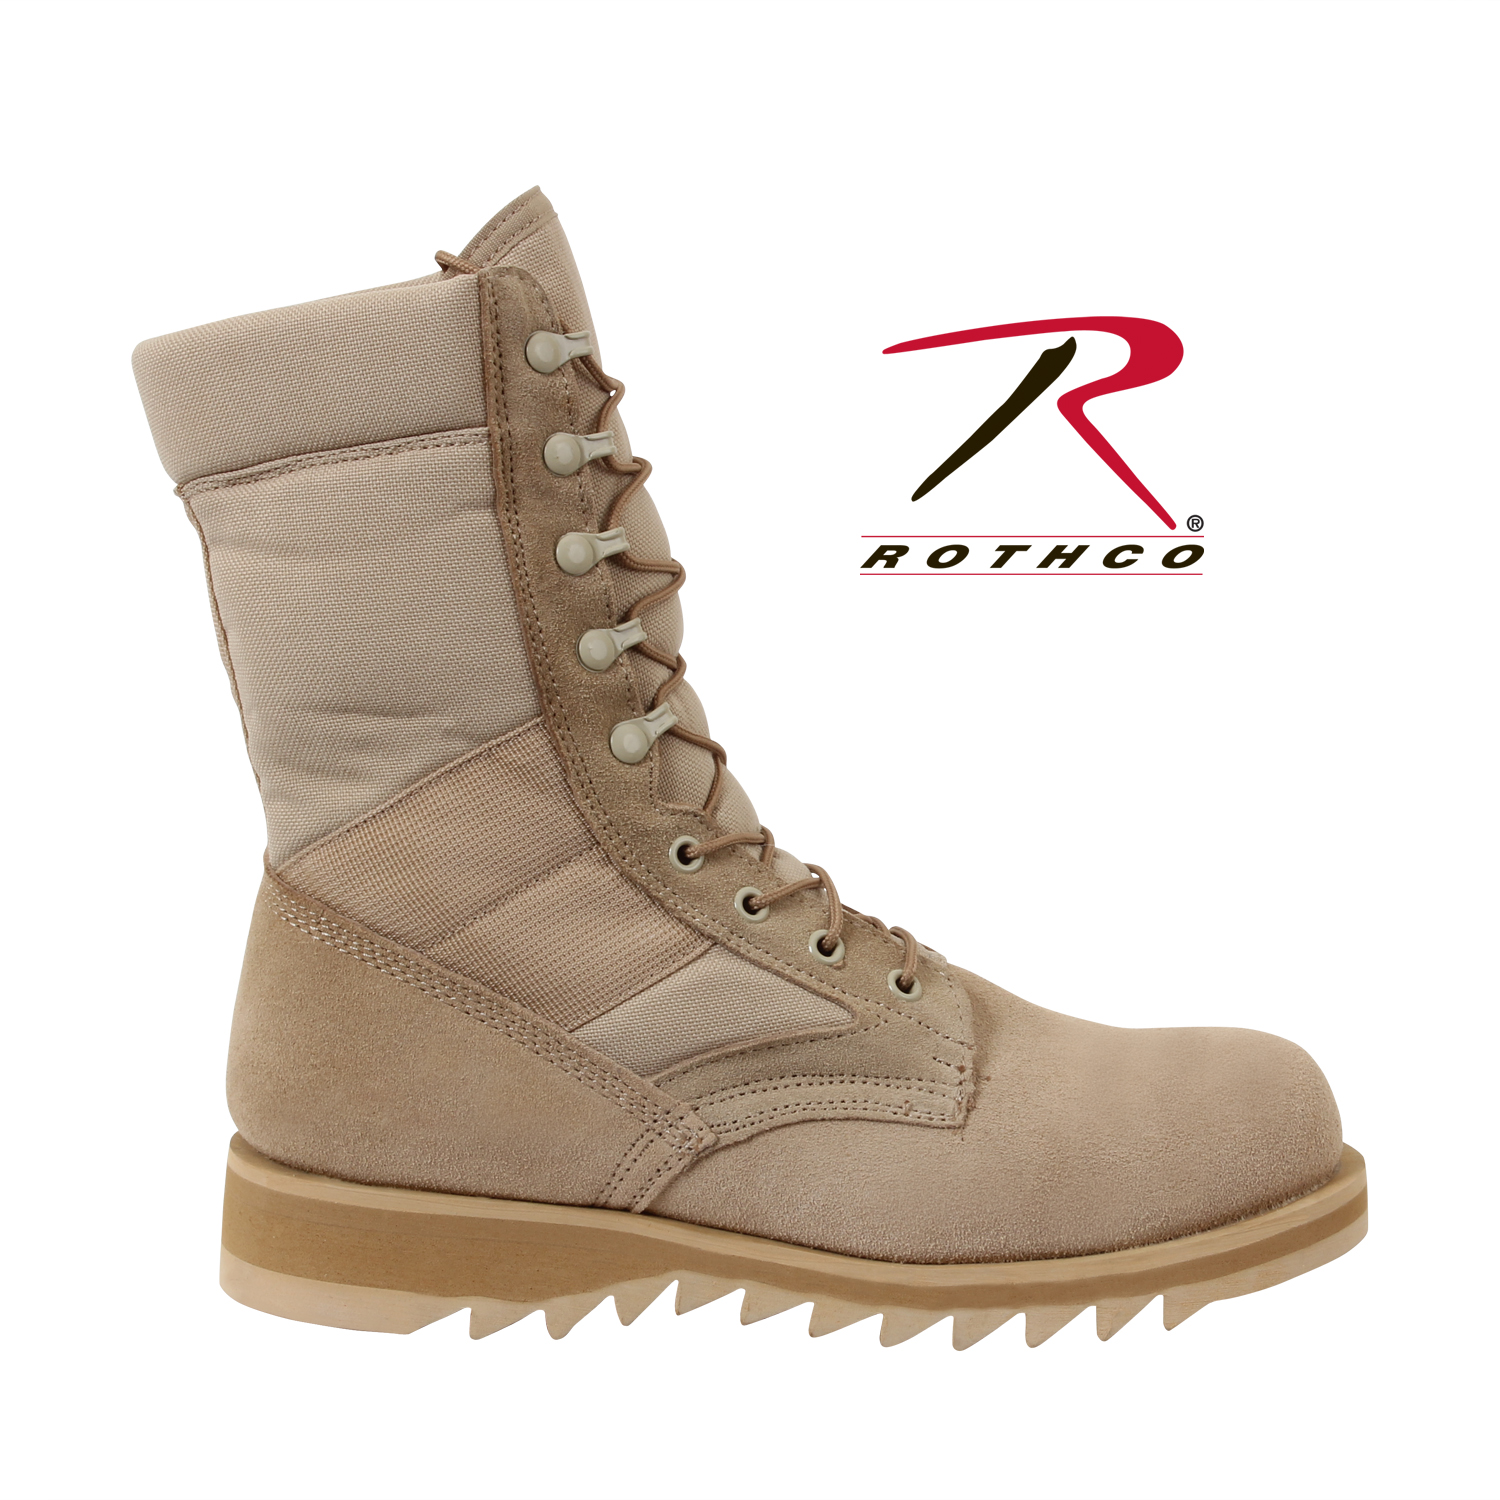 rothco 5058 g i type ripple sole desert jungle boots